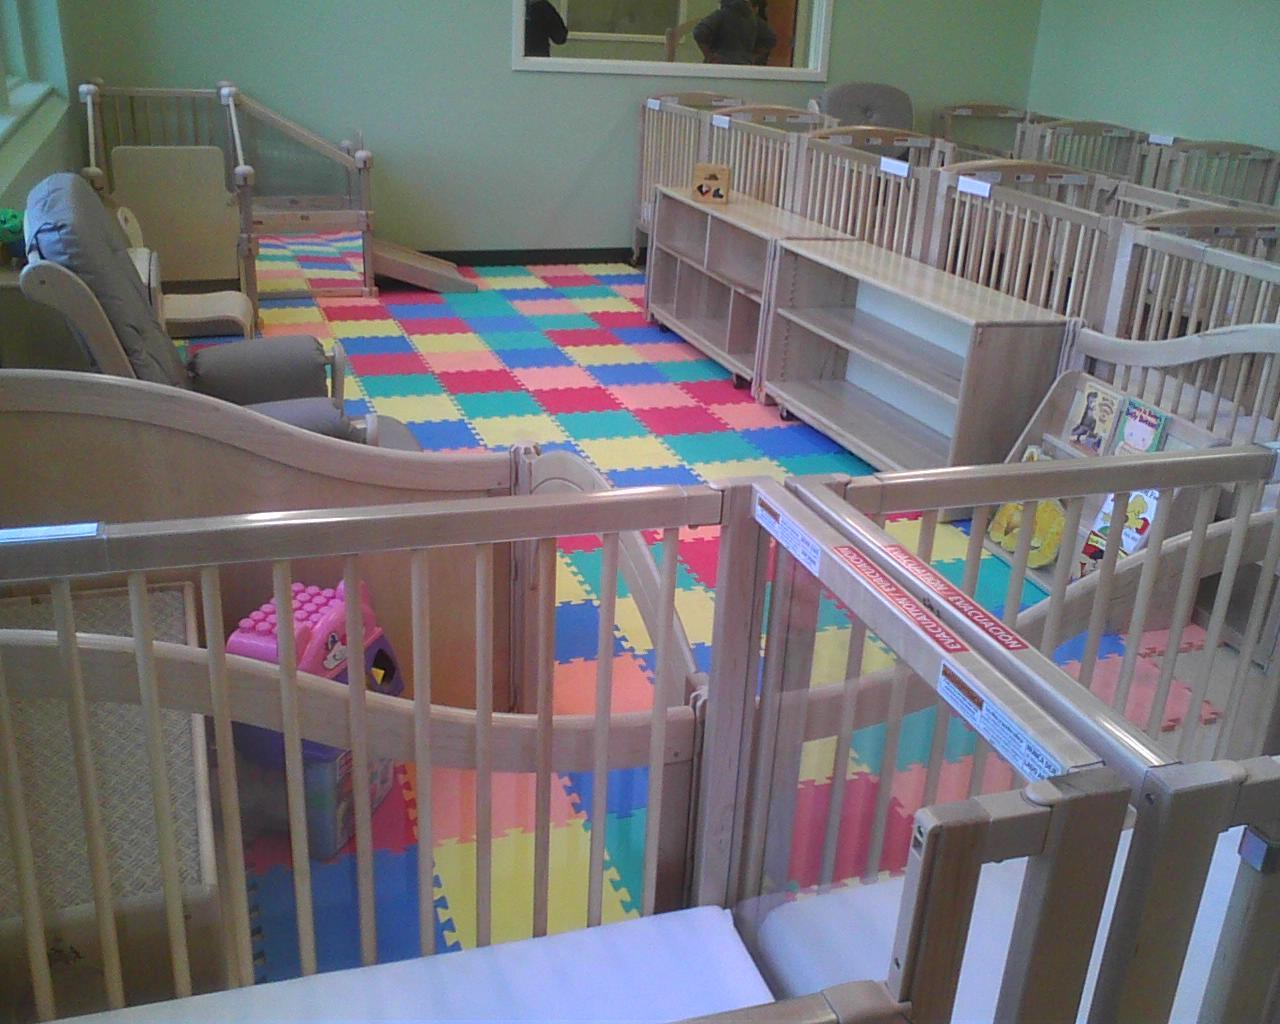 Baby cribs for daycare centers - The Main Room Of The Daycare Center For Student Parents At The Benjamin Franklin High School Can Accommodate 24 Babies And Toddlers